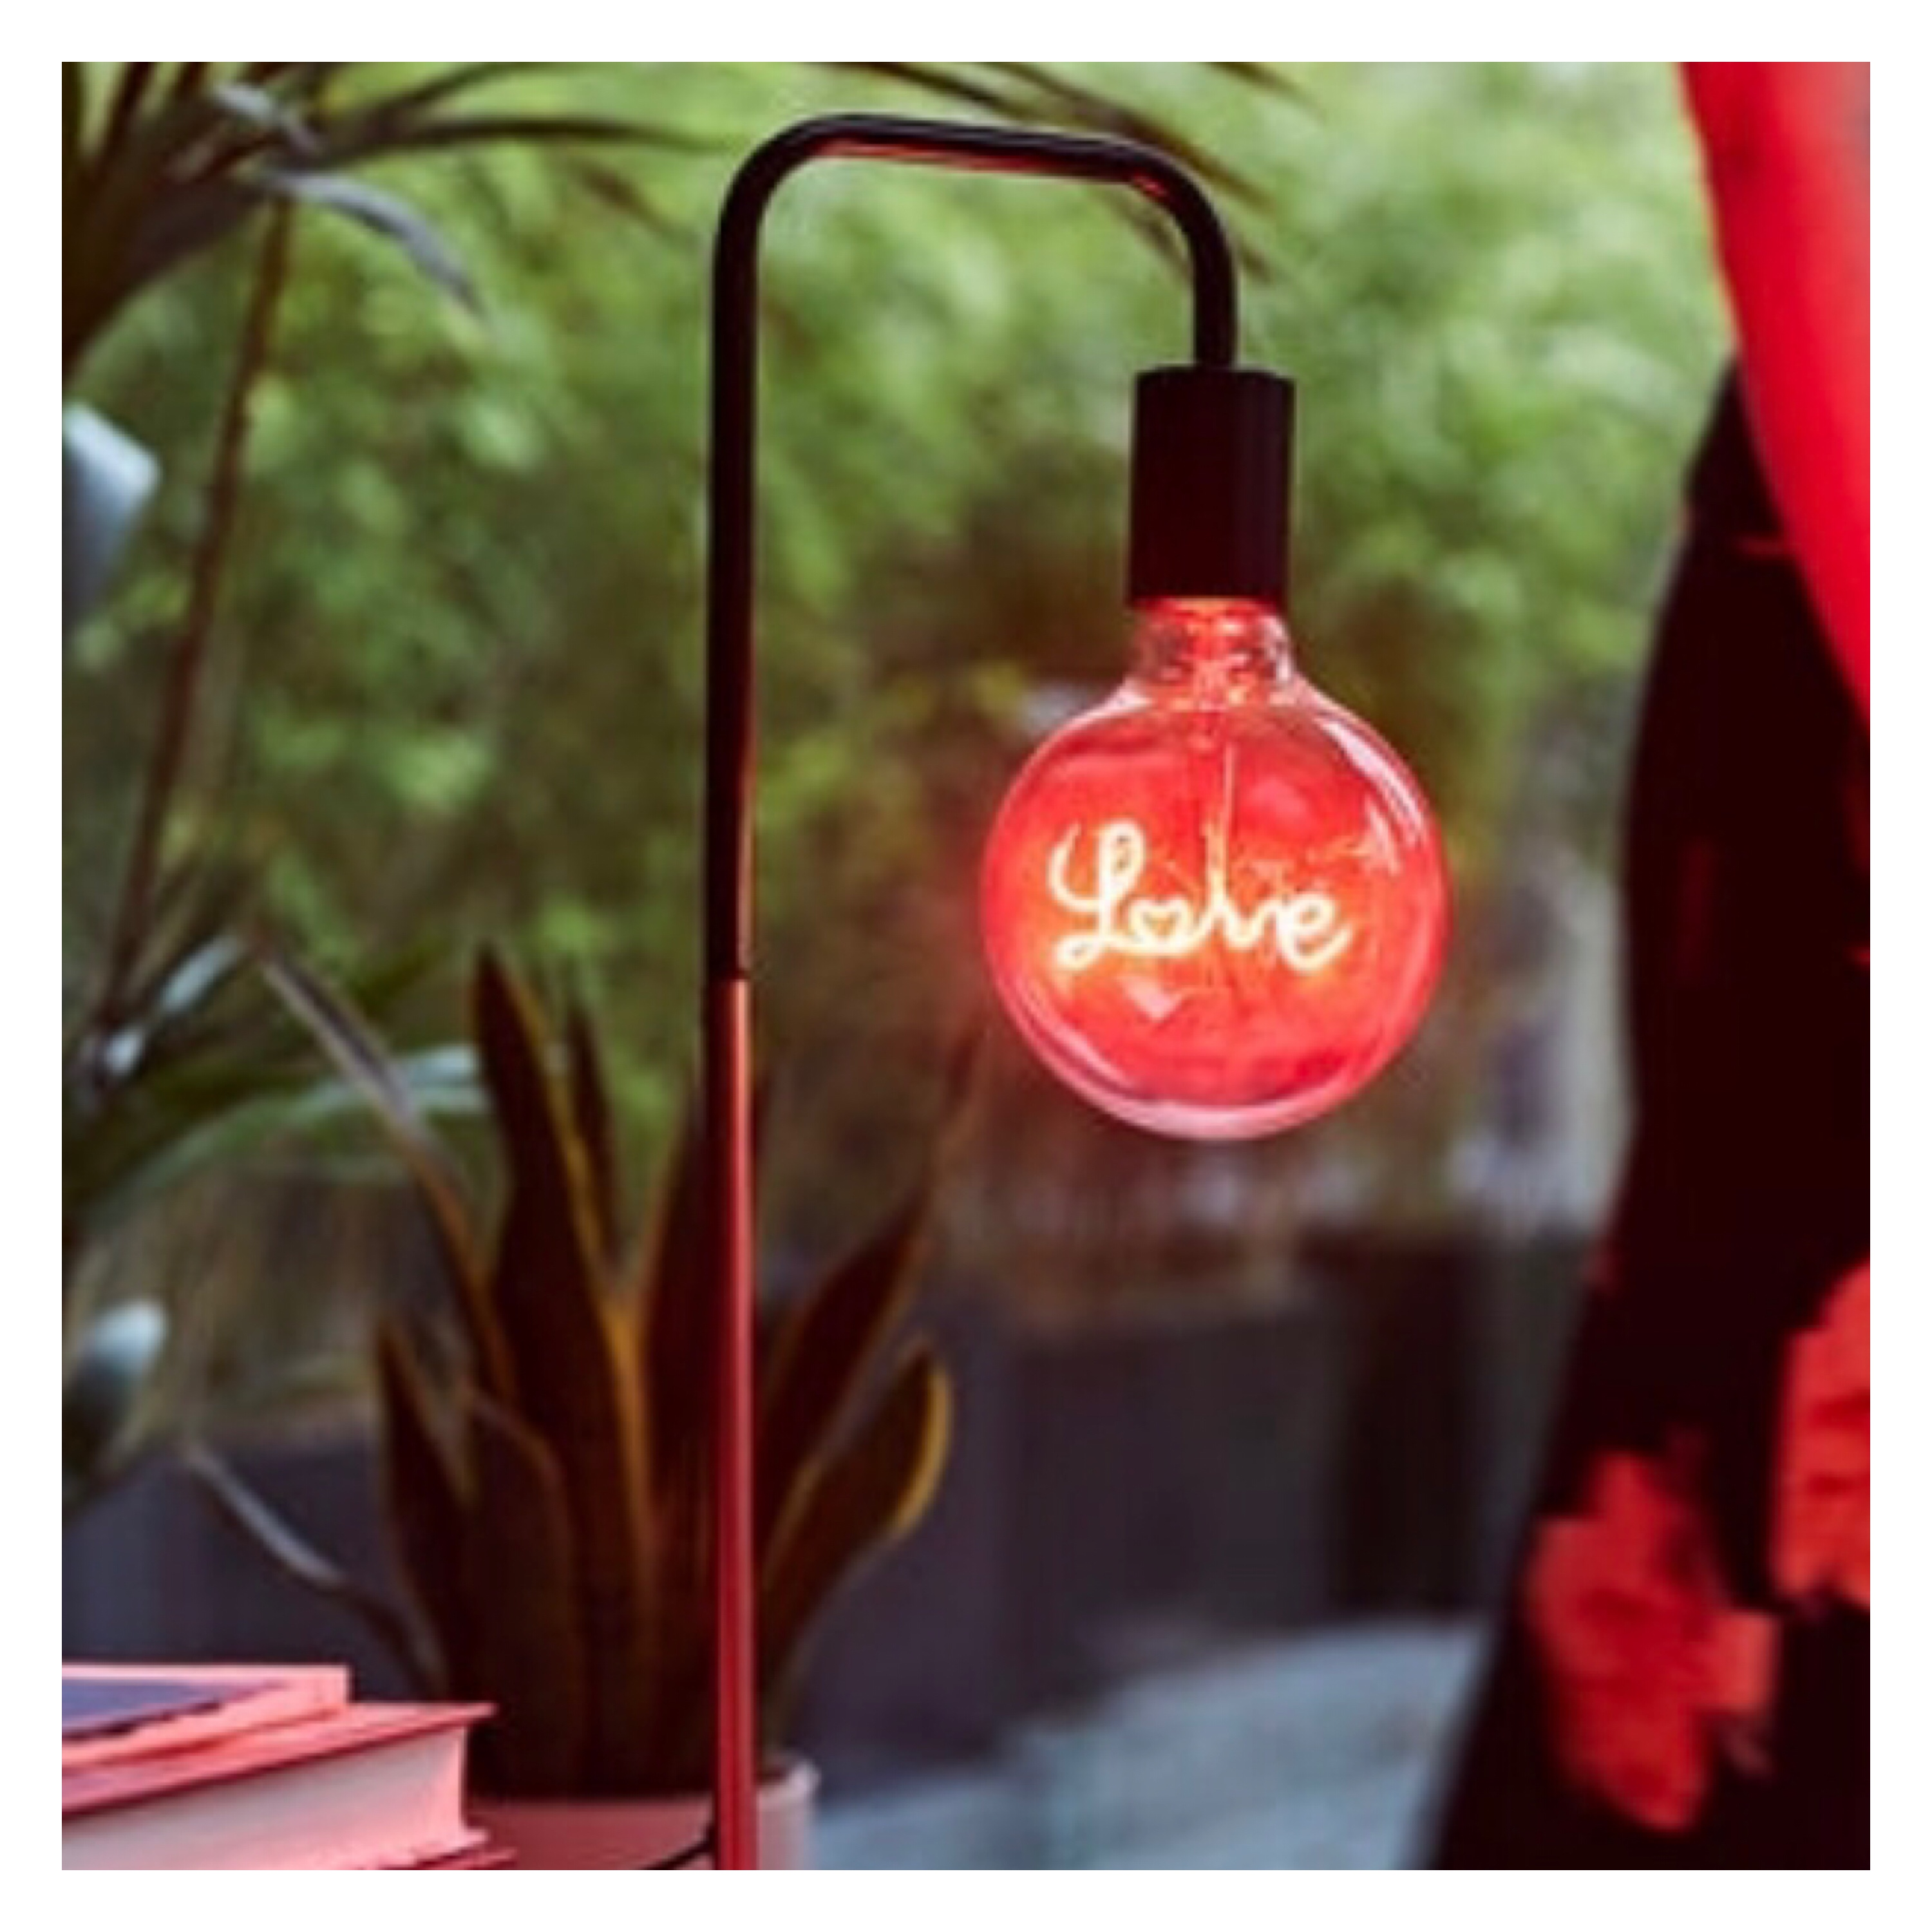 Desk last lamp with red neon 'love' inside large exposed bulb